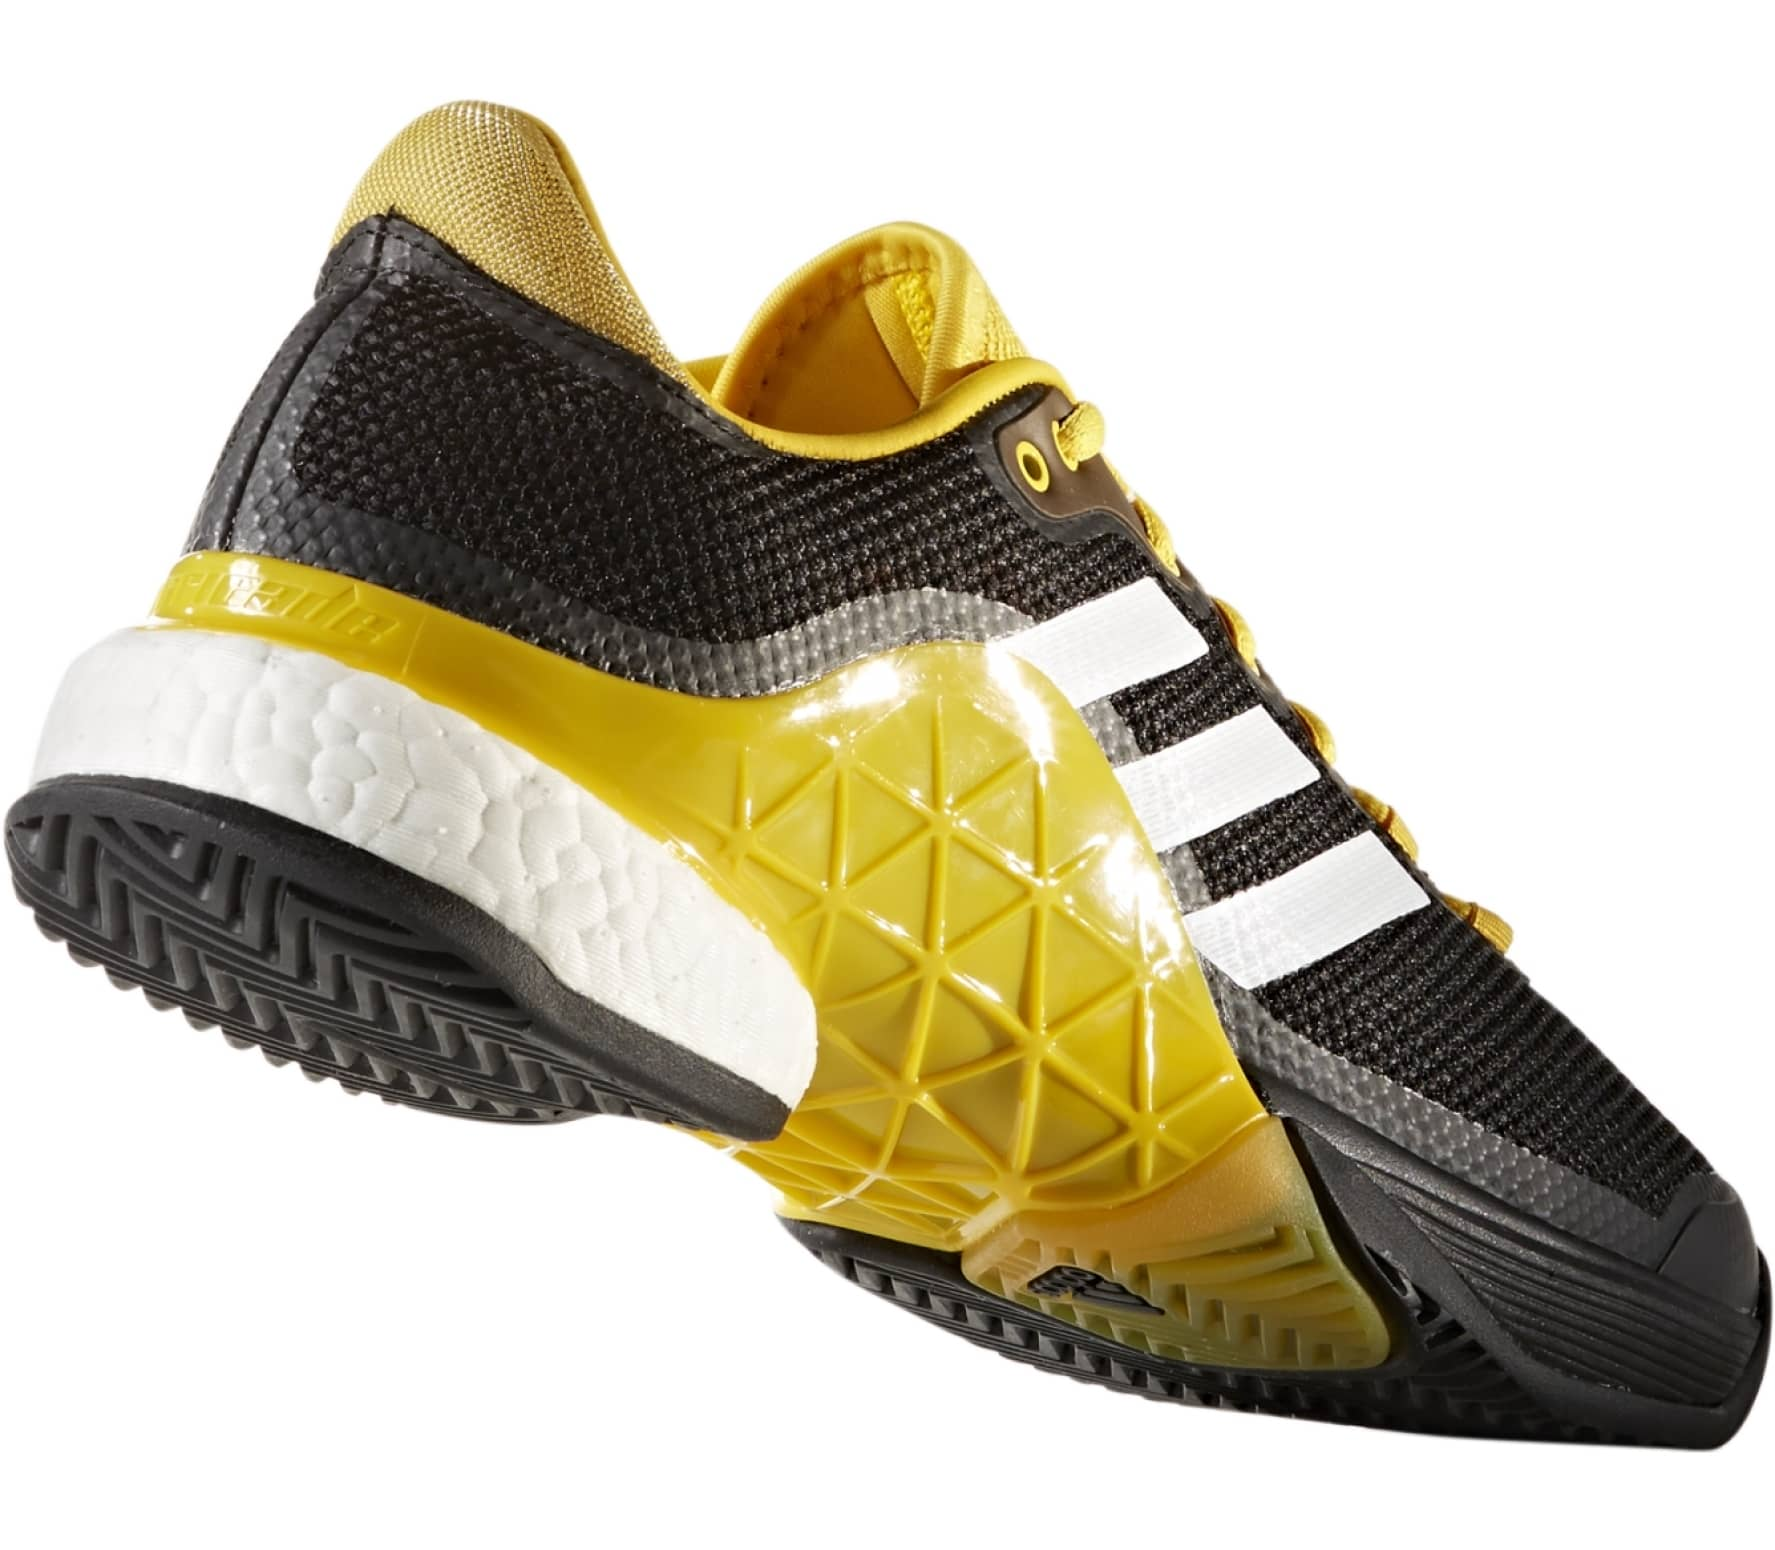 81ef507dfb9c Adidas - Barricade 2017 Boost men s tennis shoes (black yellow ...